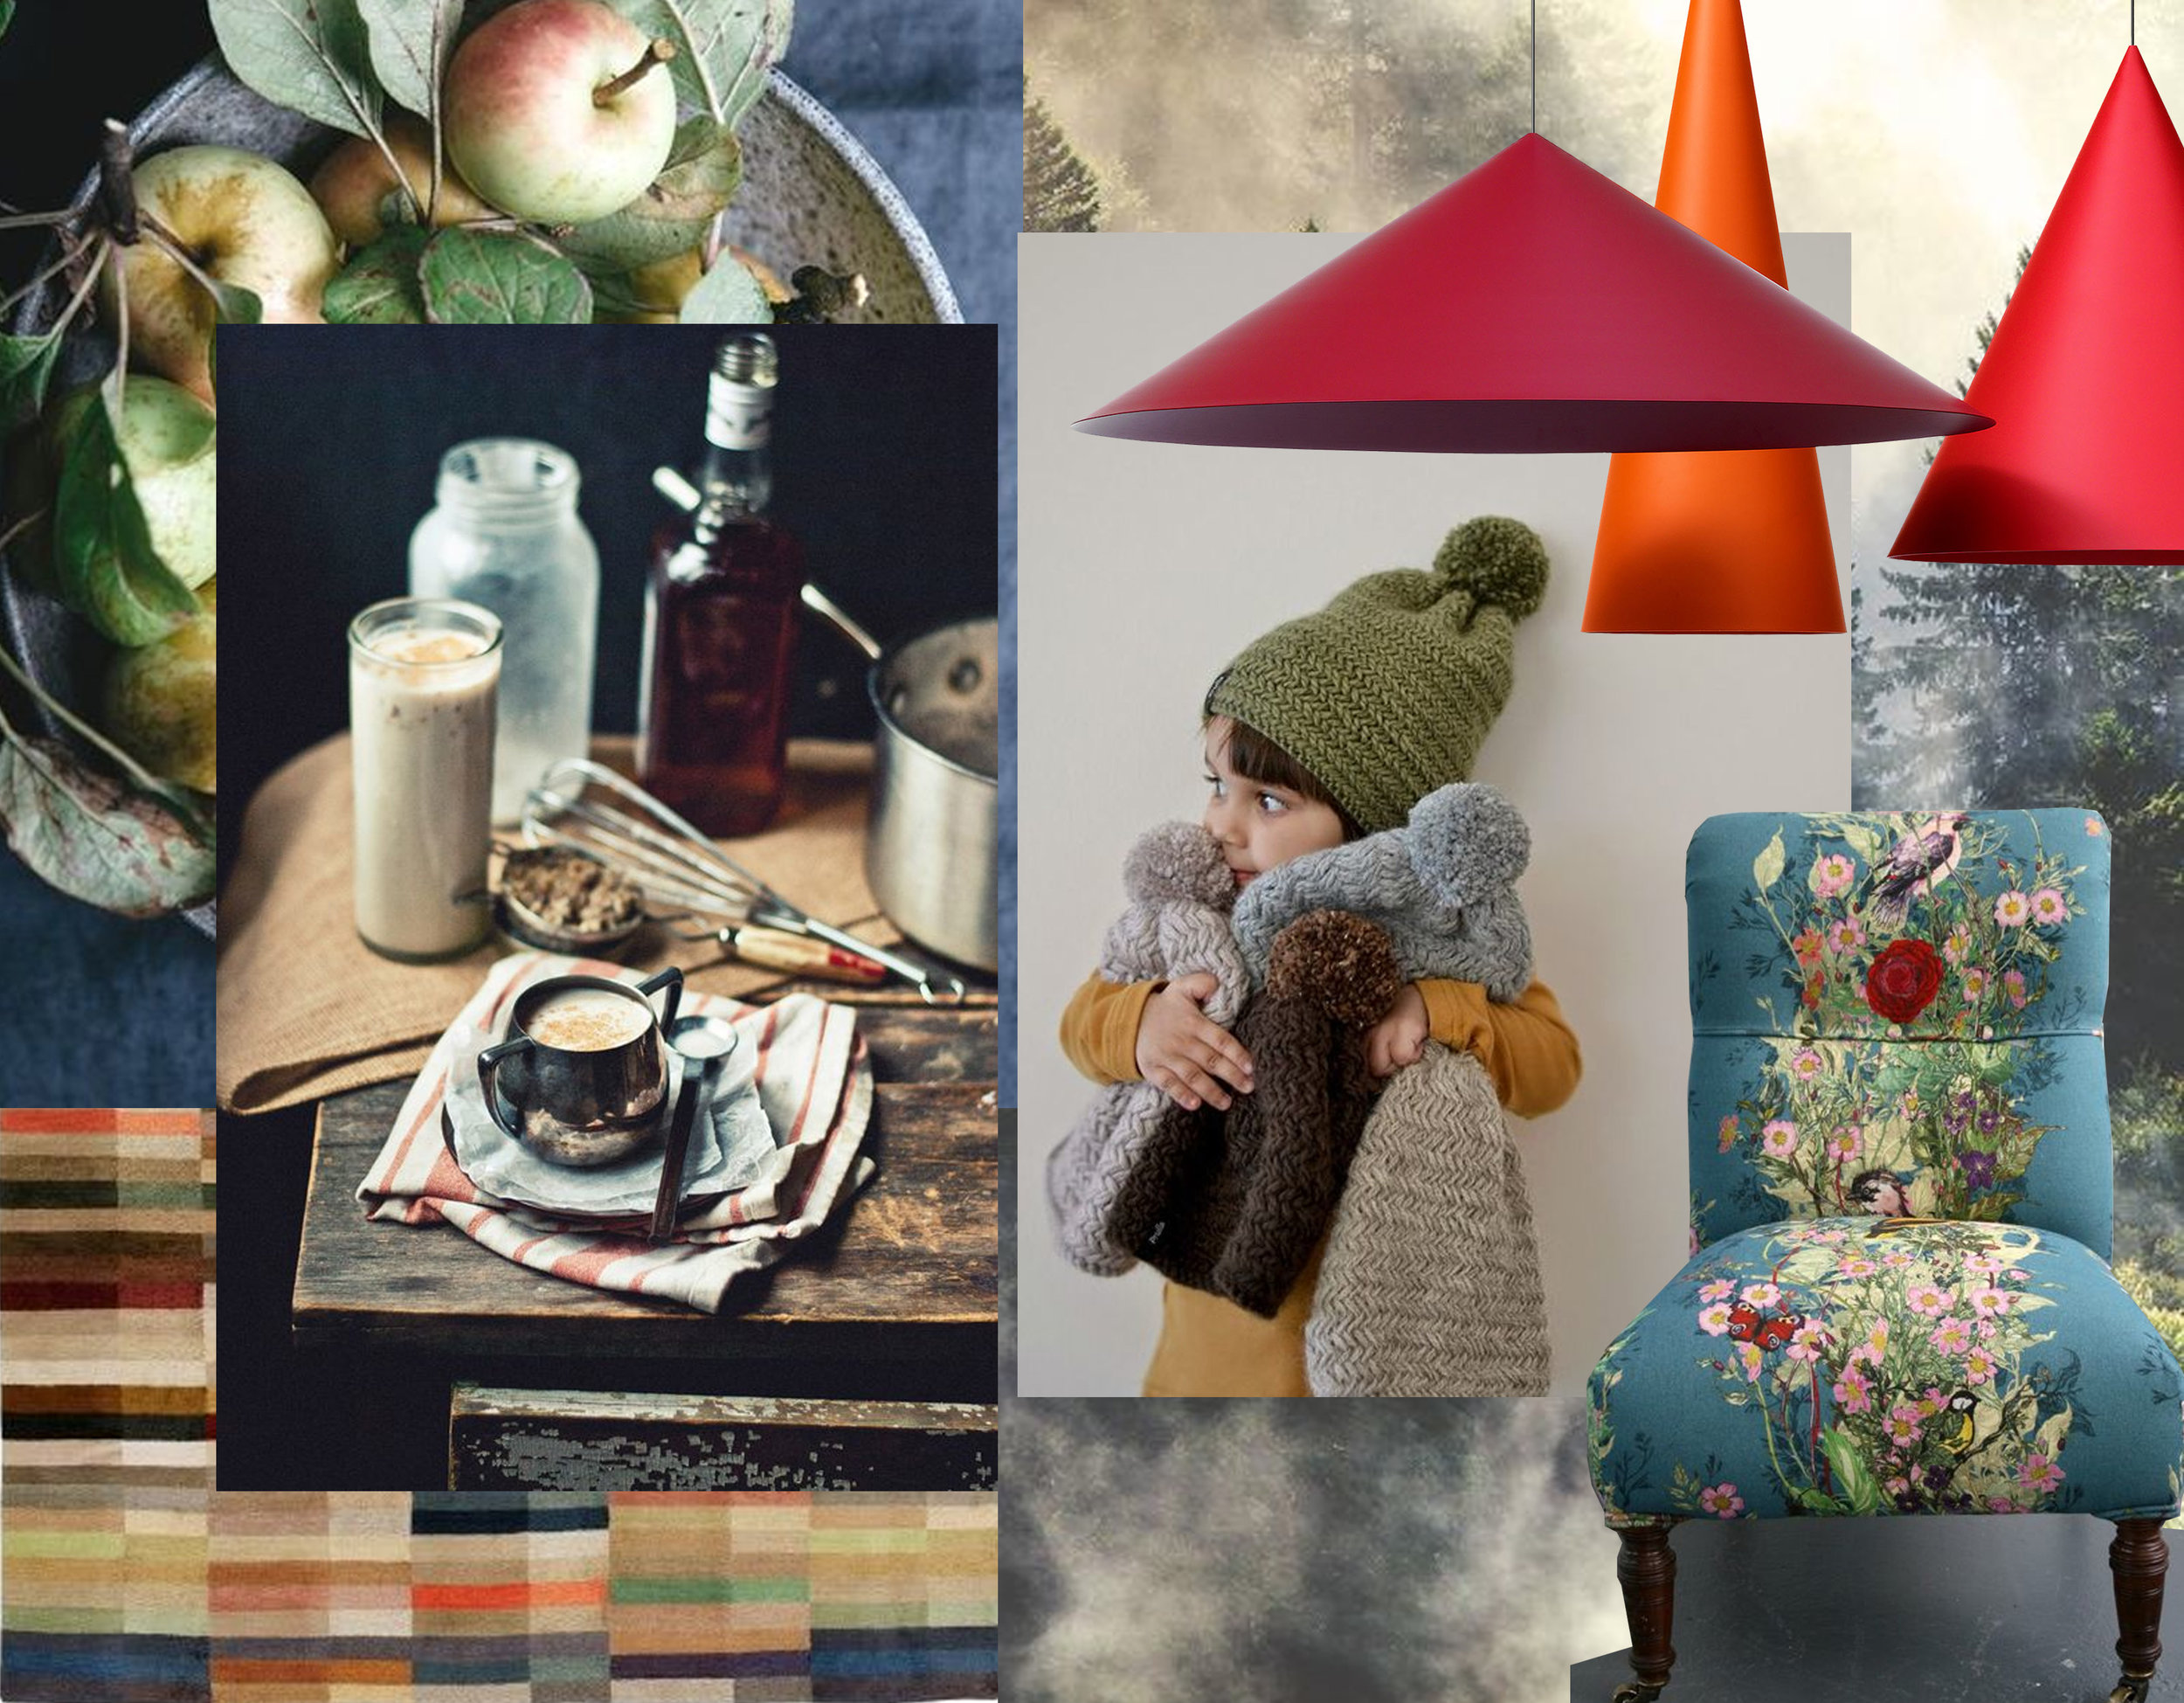 appels via  Cannelle Vanille  - food photography Kelly Brisson via  Great Food Photos - girl with knitted hats  Zezuzulla - rug Spectrum  The Rugcompany  - hanging lamps W151  Claesson Koivisto Rune  - armchair  Timorous Beasties